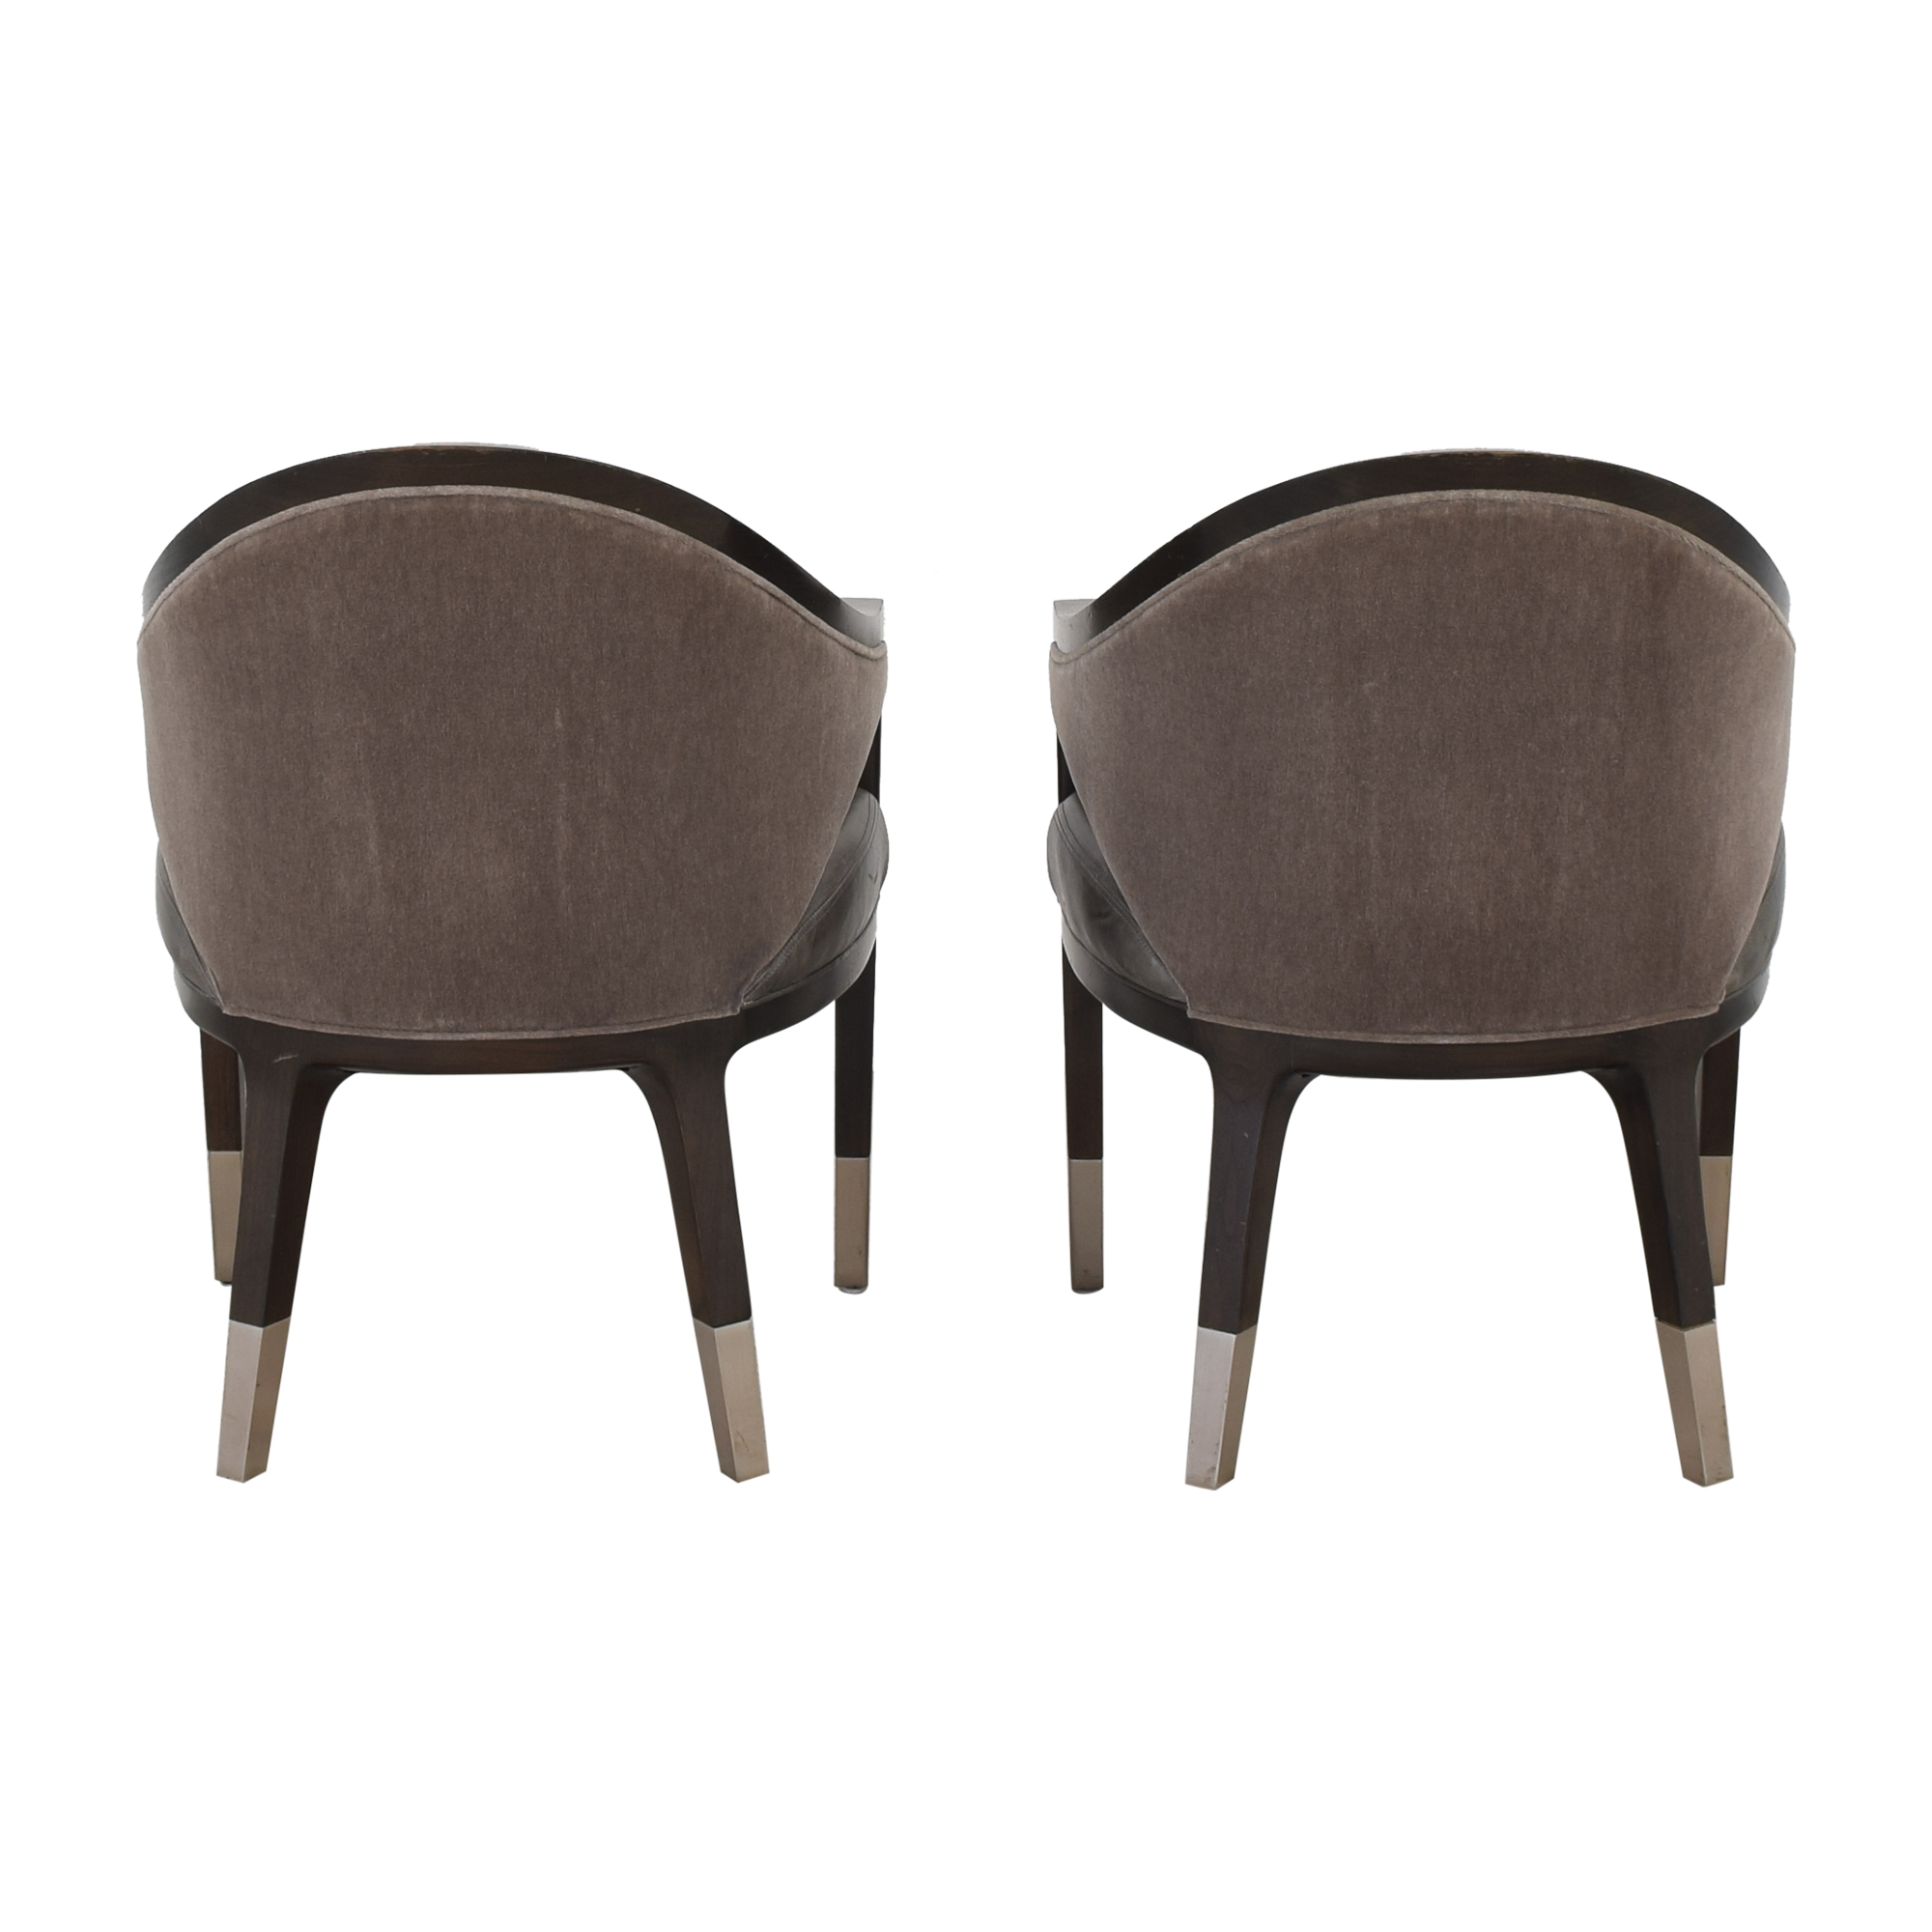 Allied Form Works Allied Works Eleven Madison Park Dining Room Chairs coupon